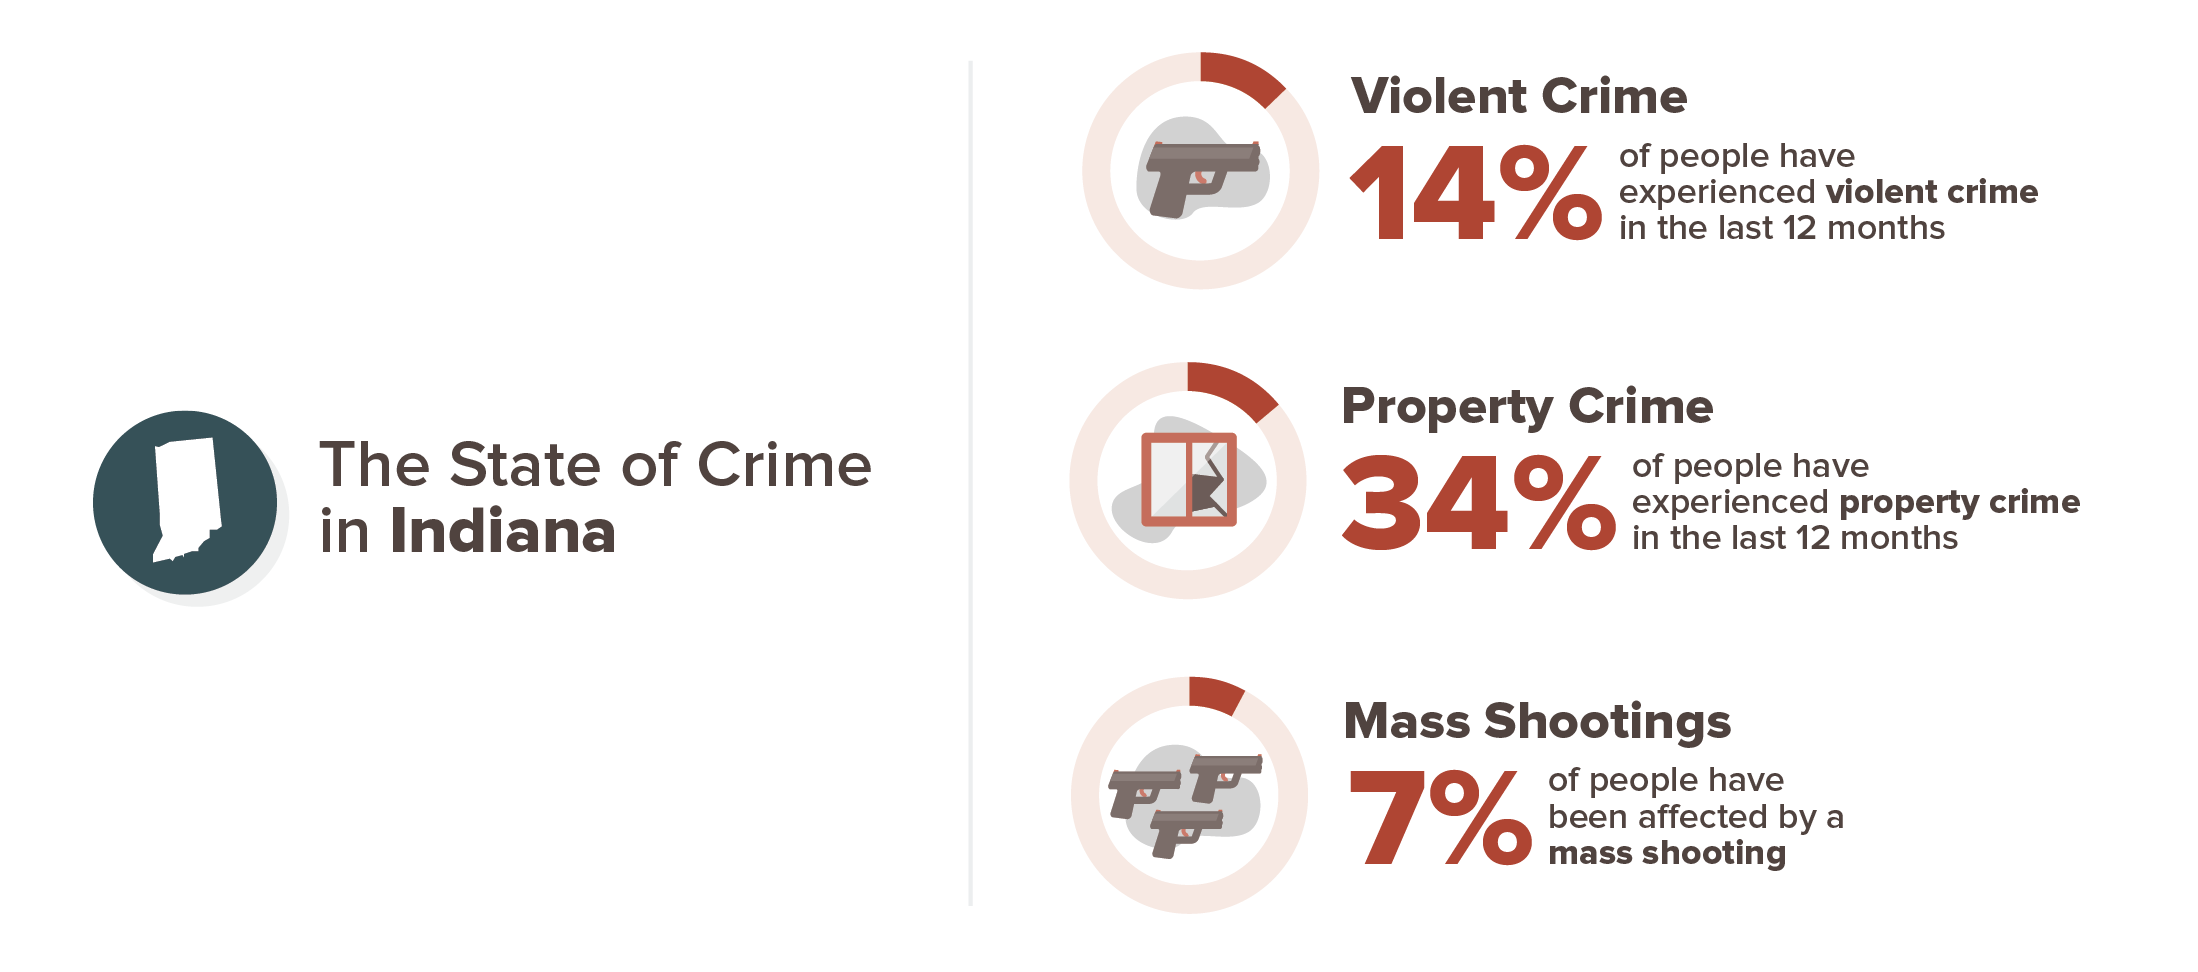 Indiana crime experience infographic; 14% violent crime, 34% property crime, 7% mass shooting